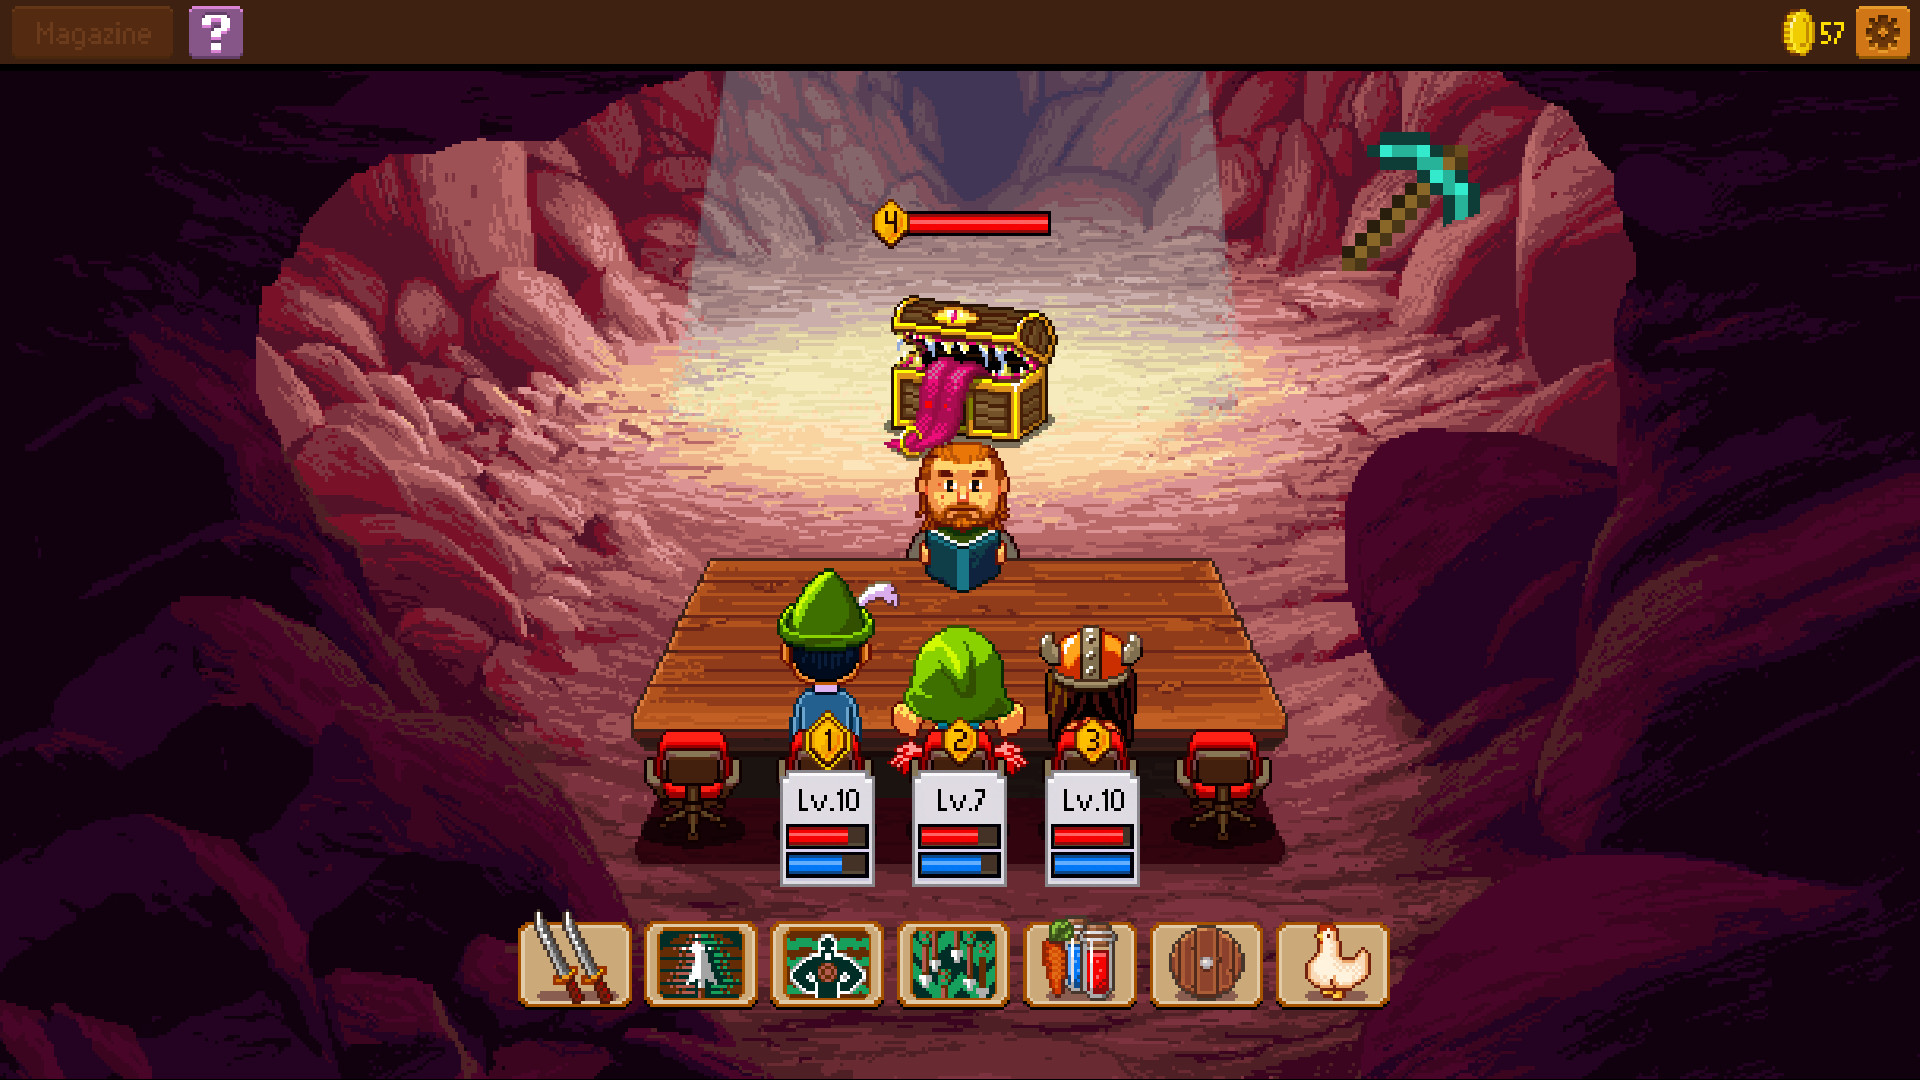 knights of pen and paper 2 free